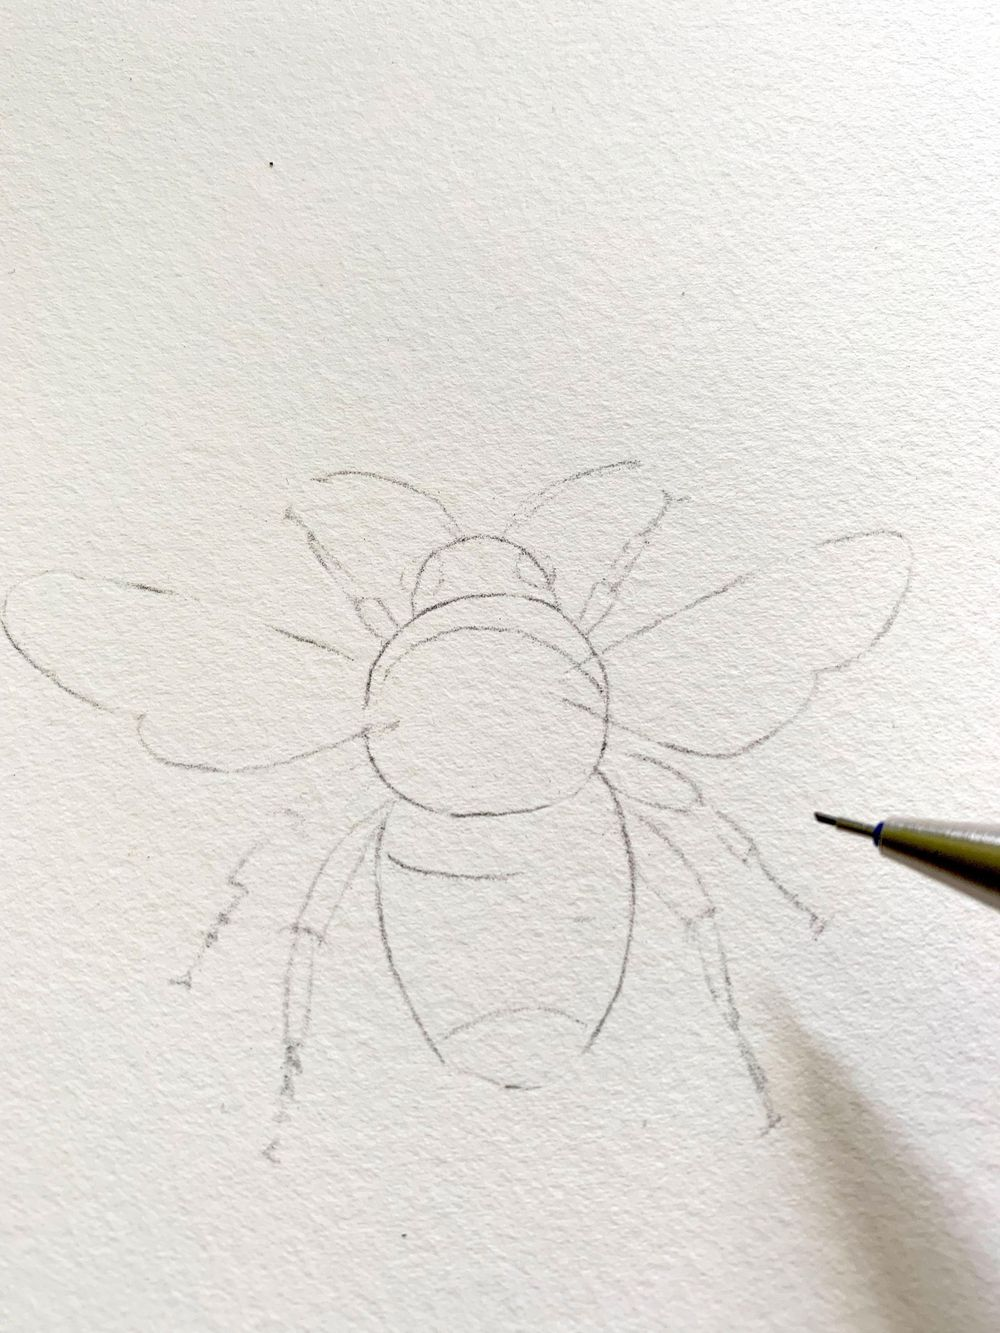 Busy Bumblebee - image 1 - student project